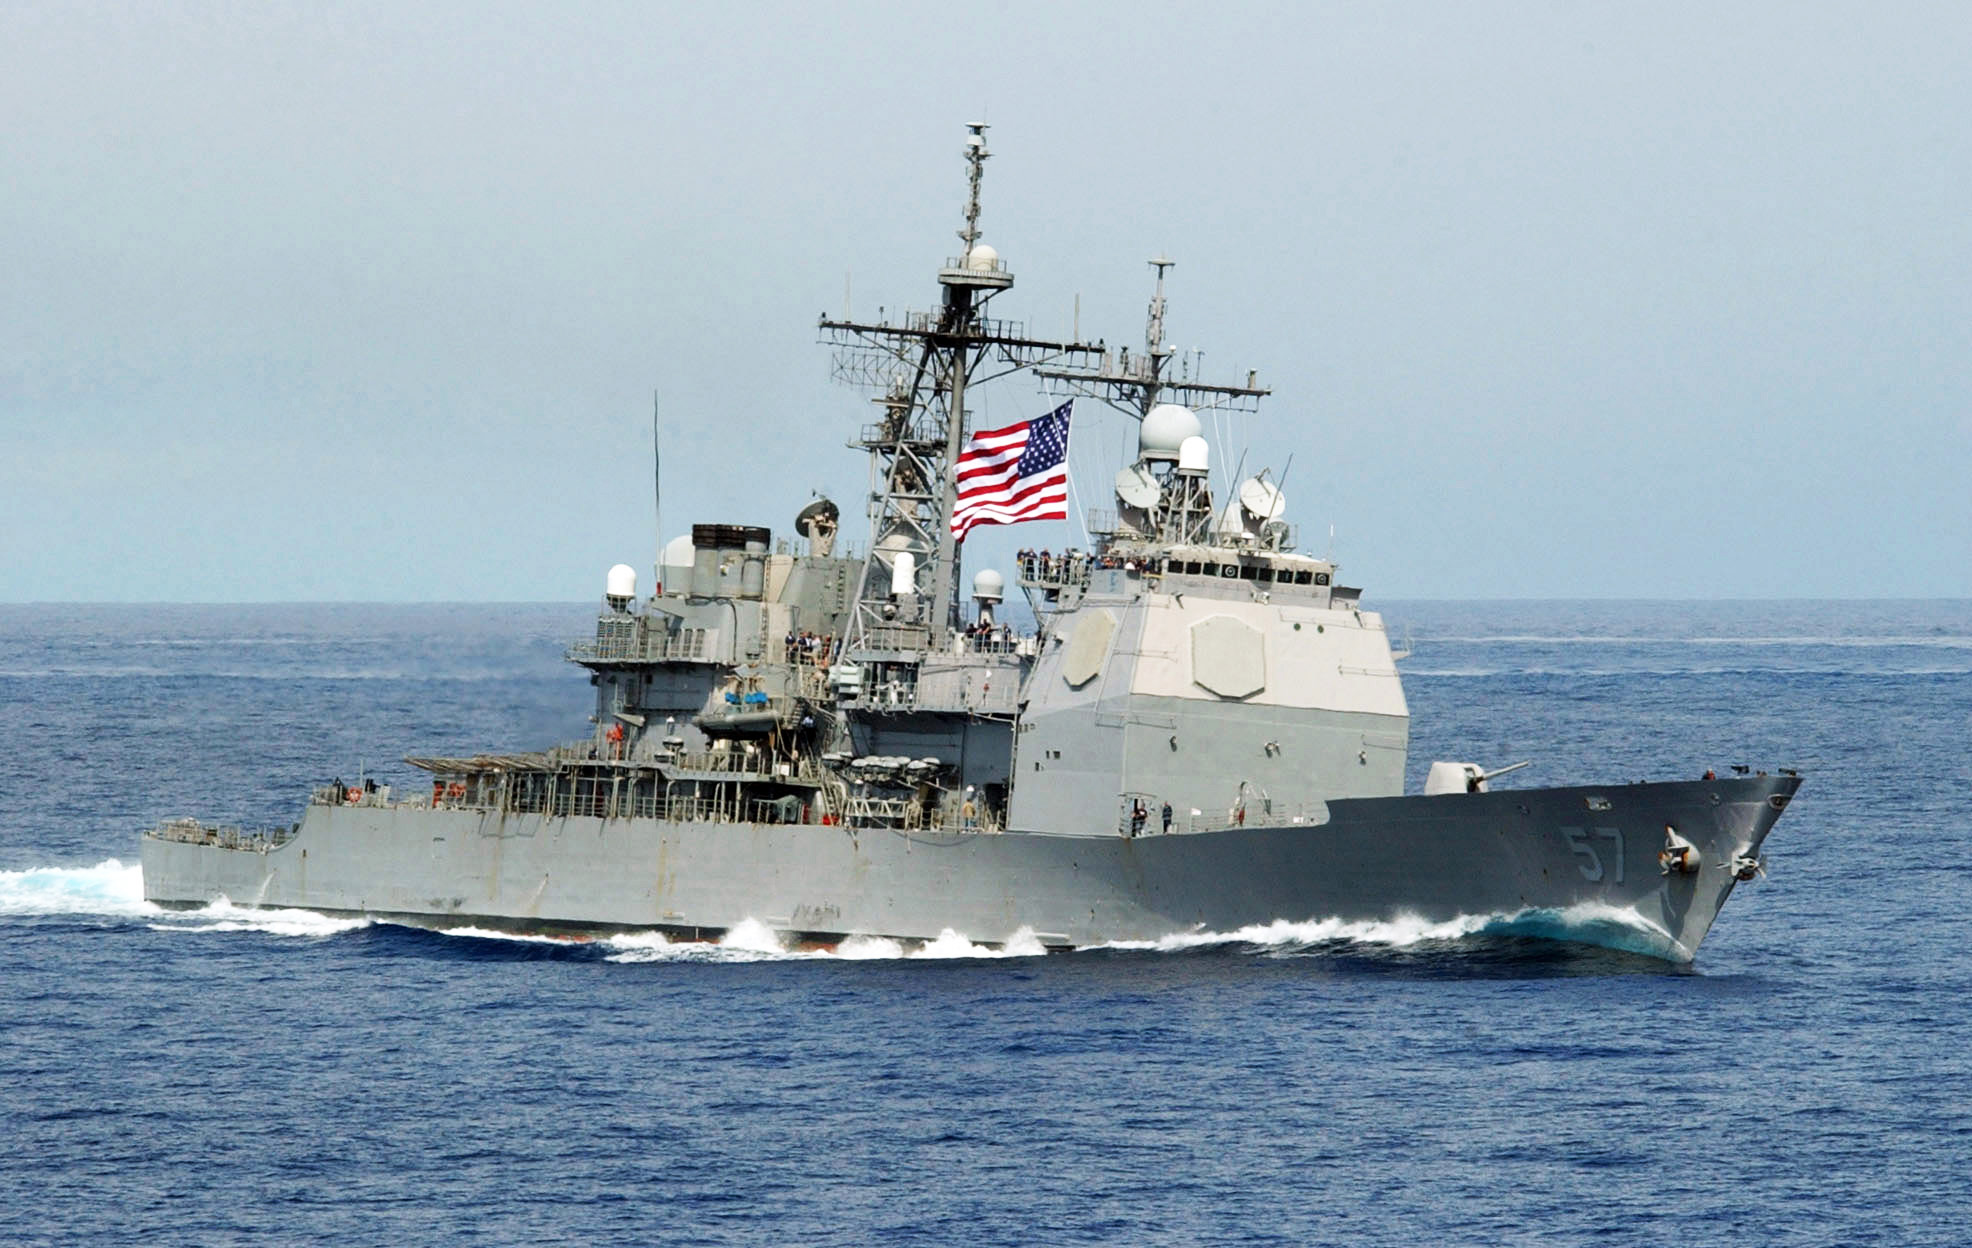 File:USS Lake Champlain (CG-57) battle ensign.jpg - Wikimedia Commons